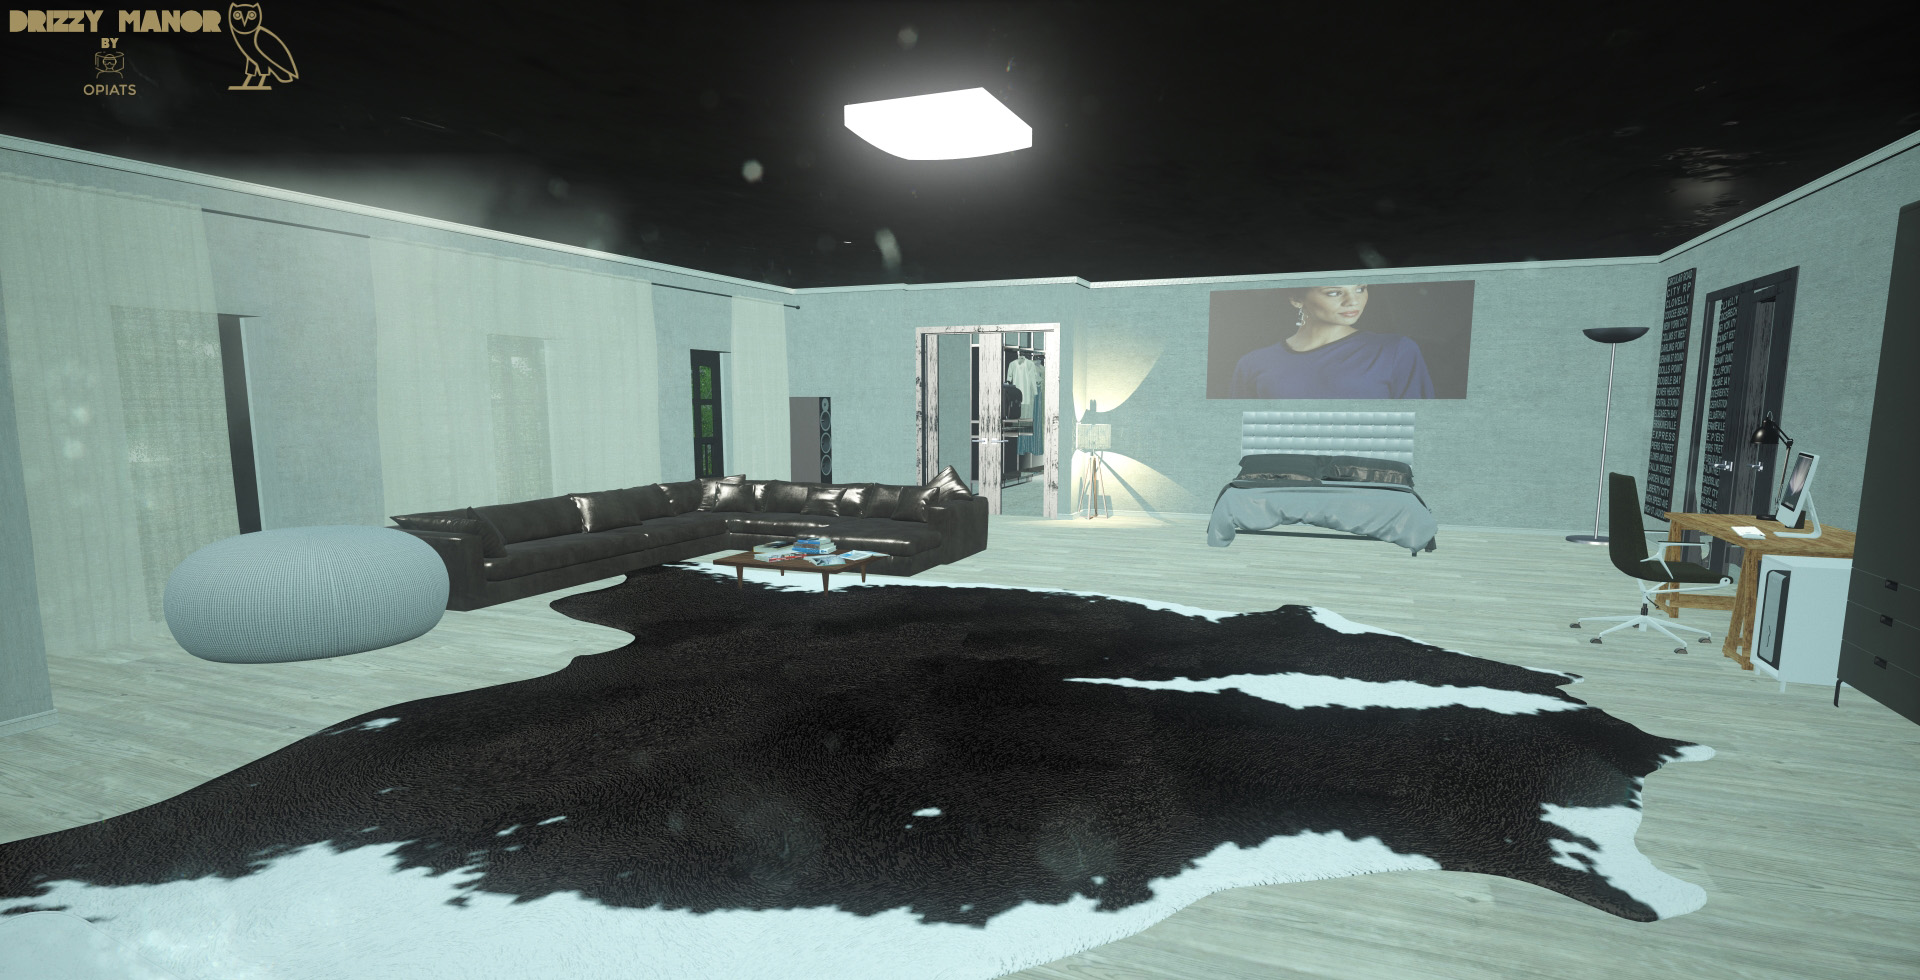 Take A Vr Trip Through Drizzy S Manor With The Help Of